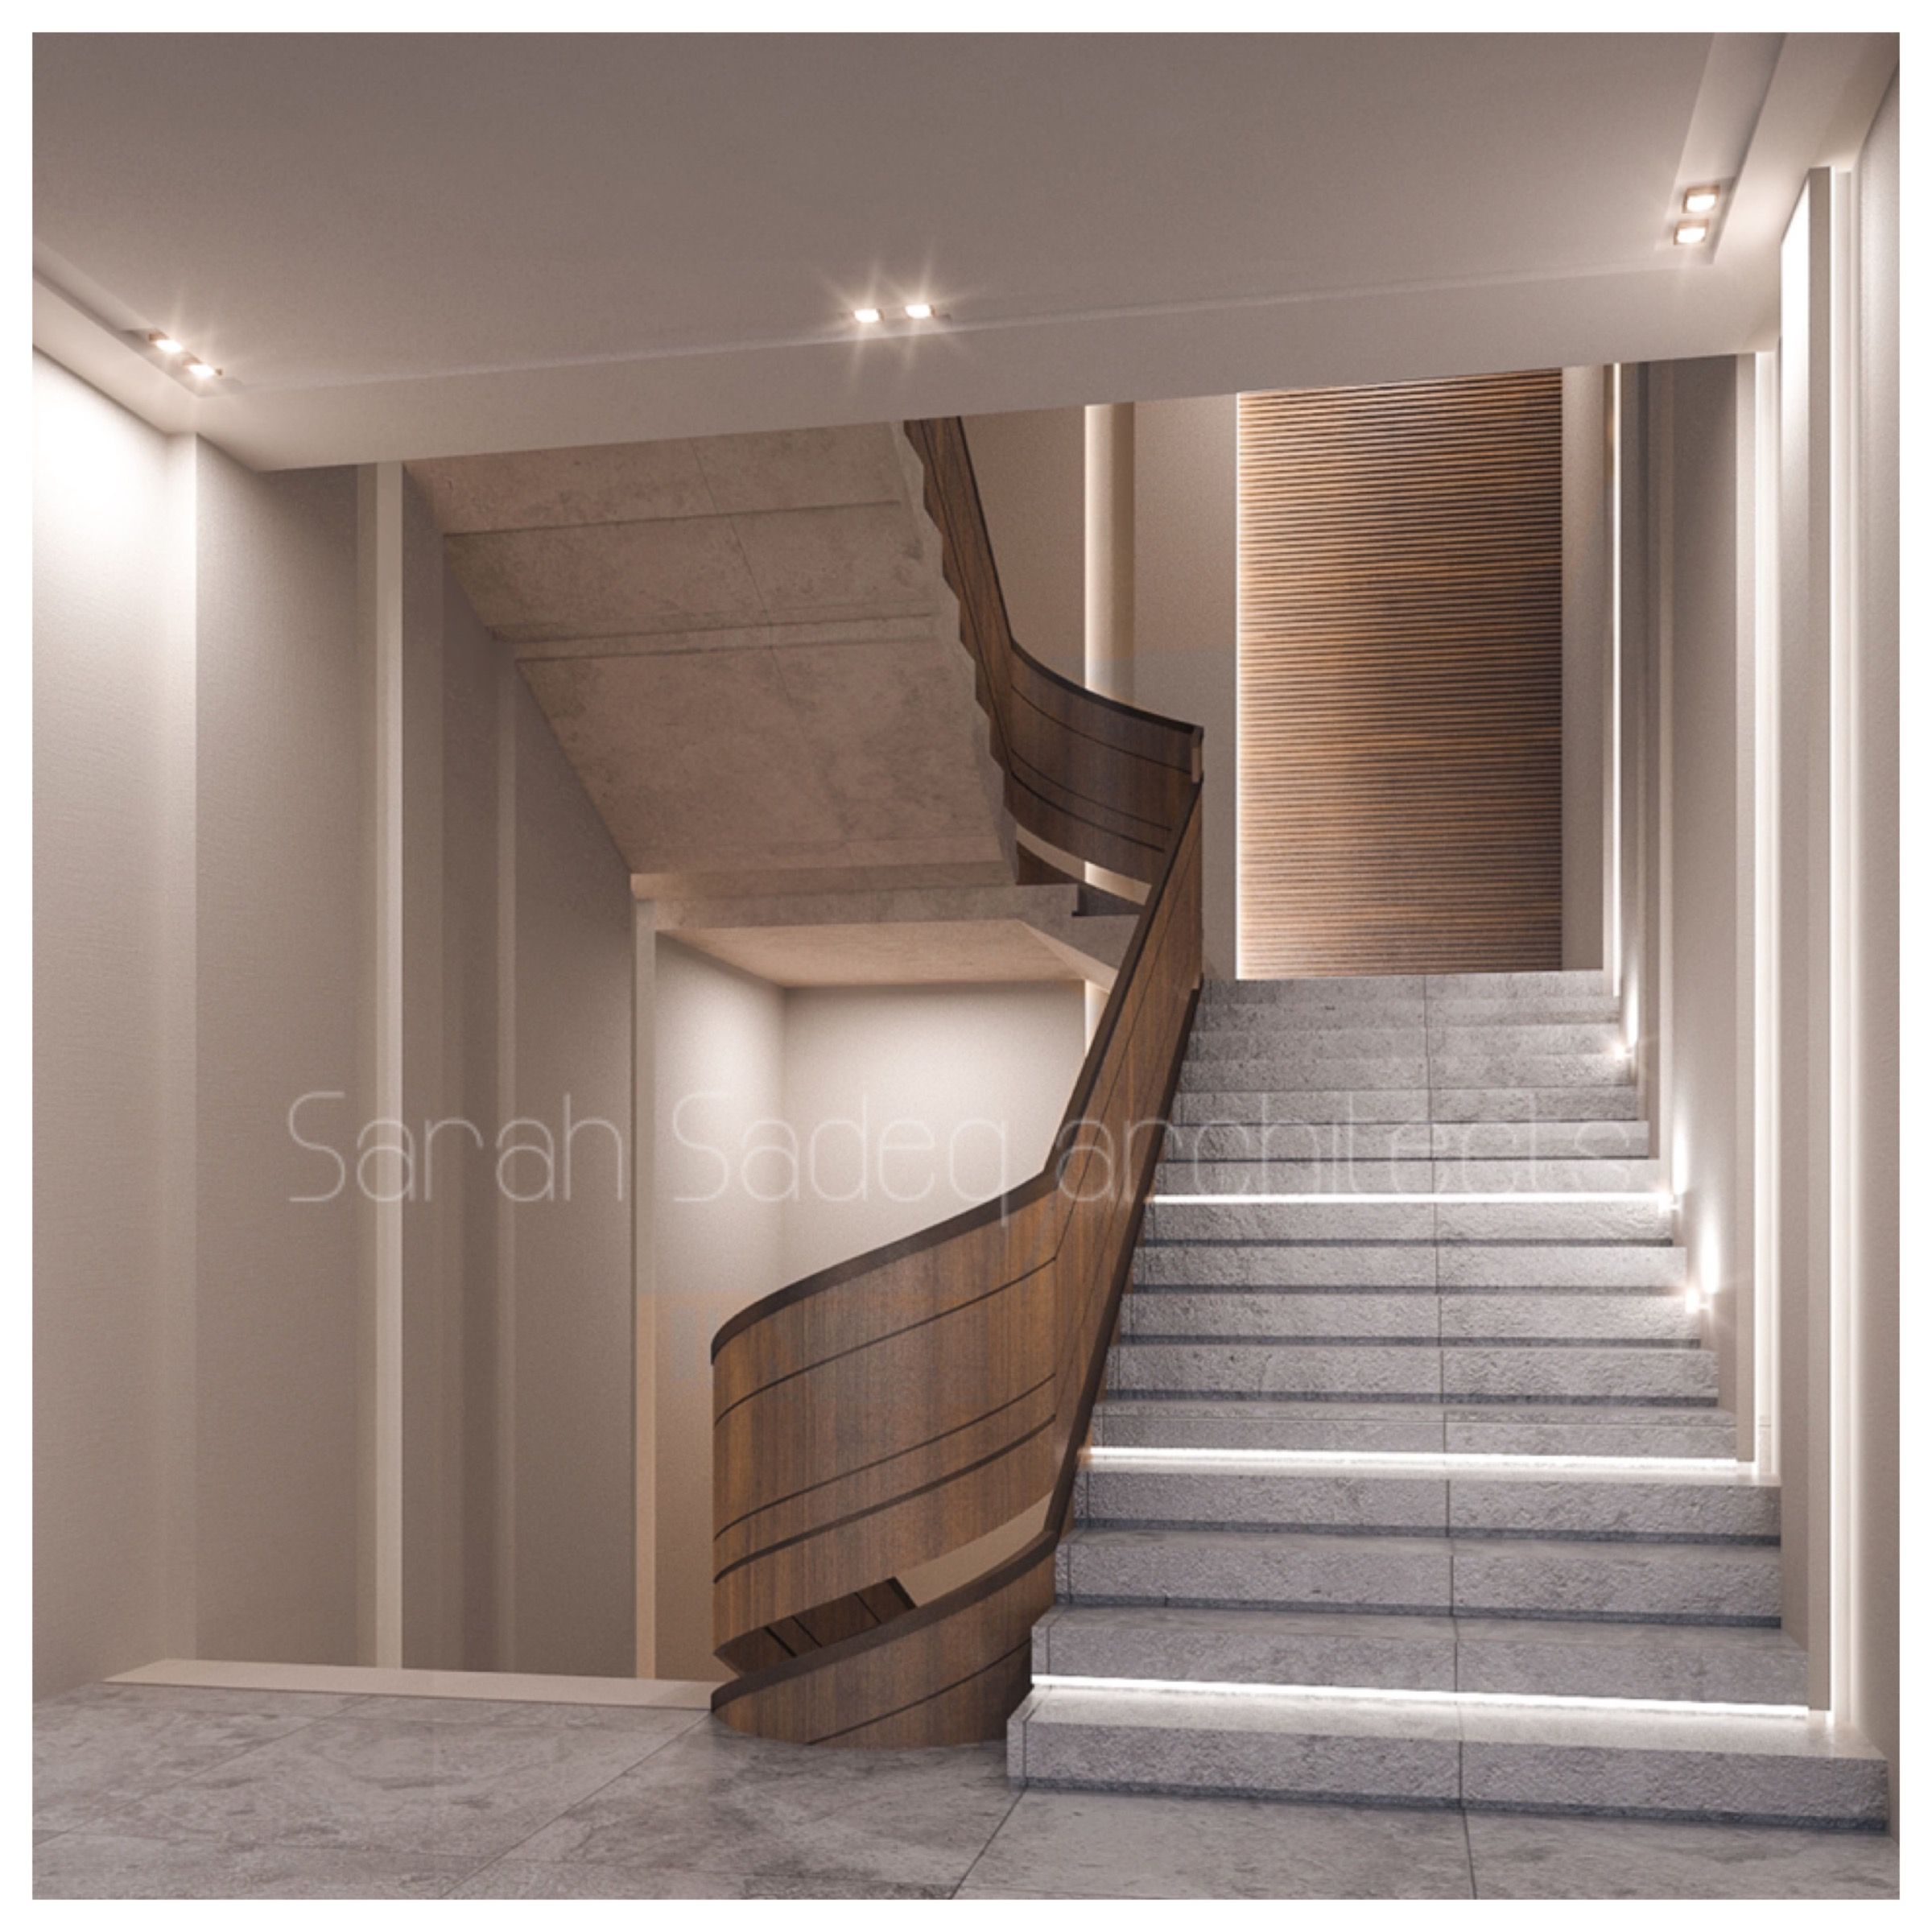 40 Amazing Staircases Details That Will Inspire You: Interior Private Villa Sarah Sadeq Architects Kuwait